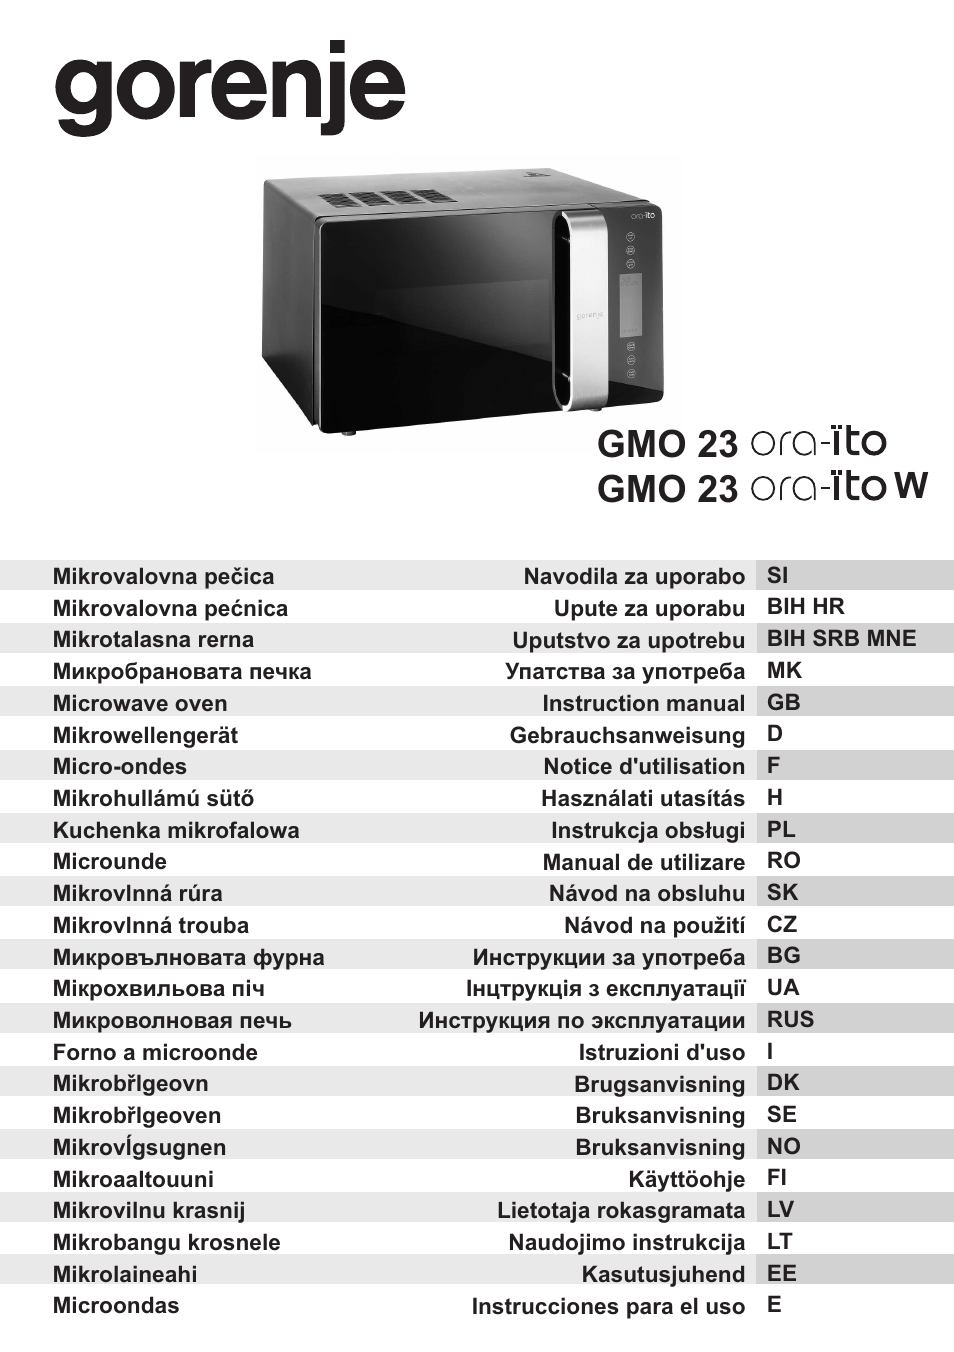 gorenje gmo 23 ora ito user manual 175 pages. Black Bedroom Furniture Sets. Home Design Ideas